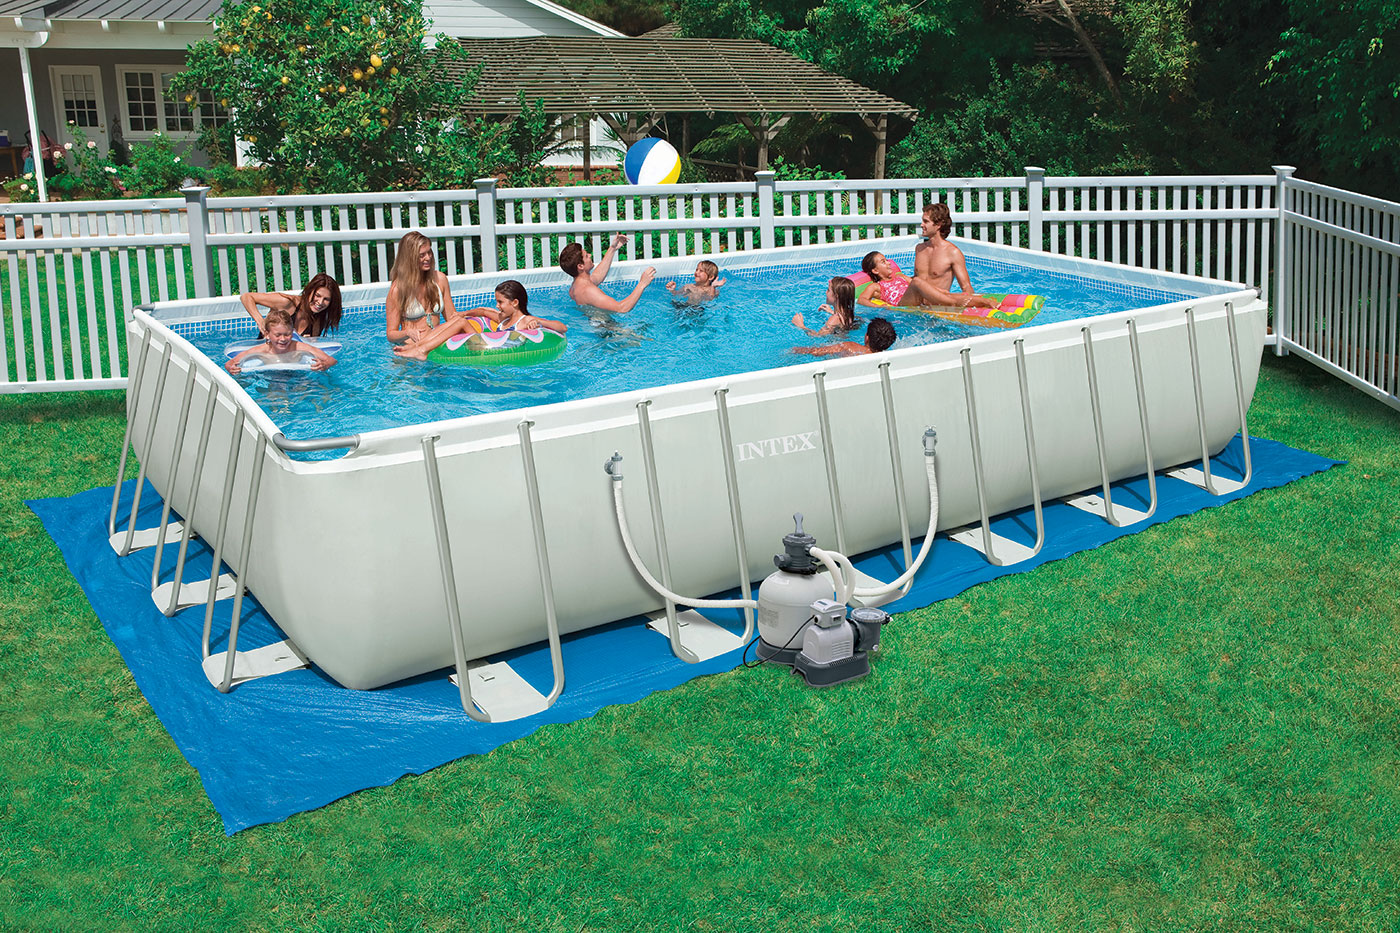 Intex 24-Foot by 12-Foot by 52-Inch Rectangular Ultra Frame Pool ...